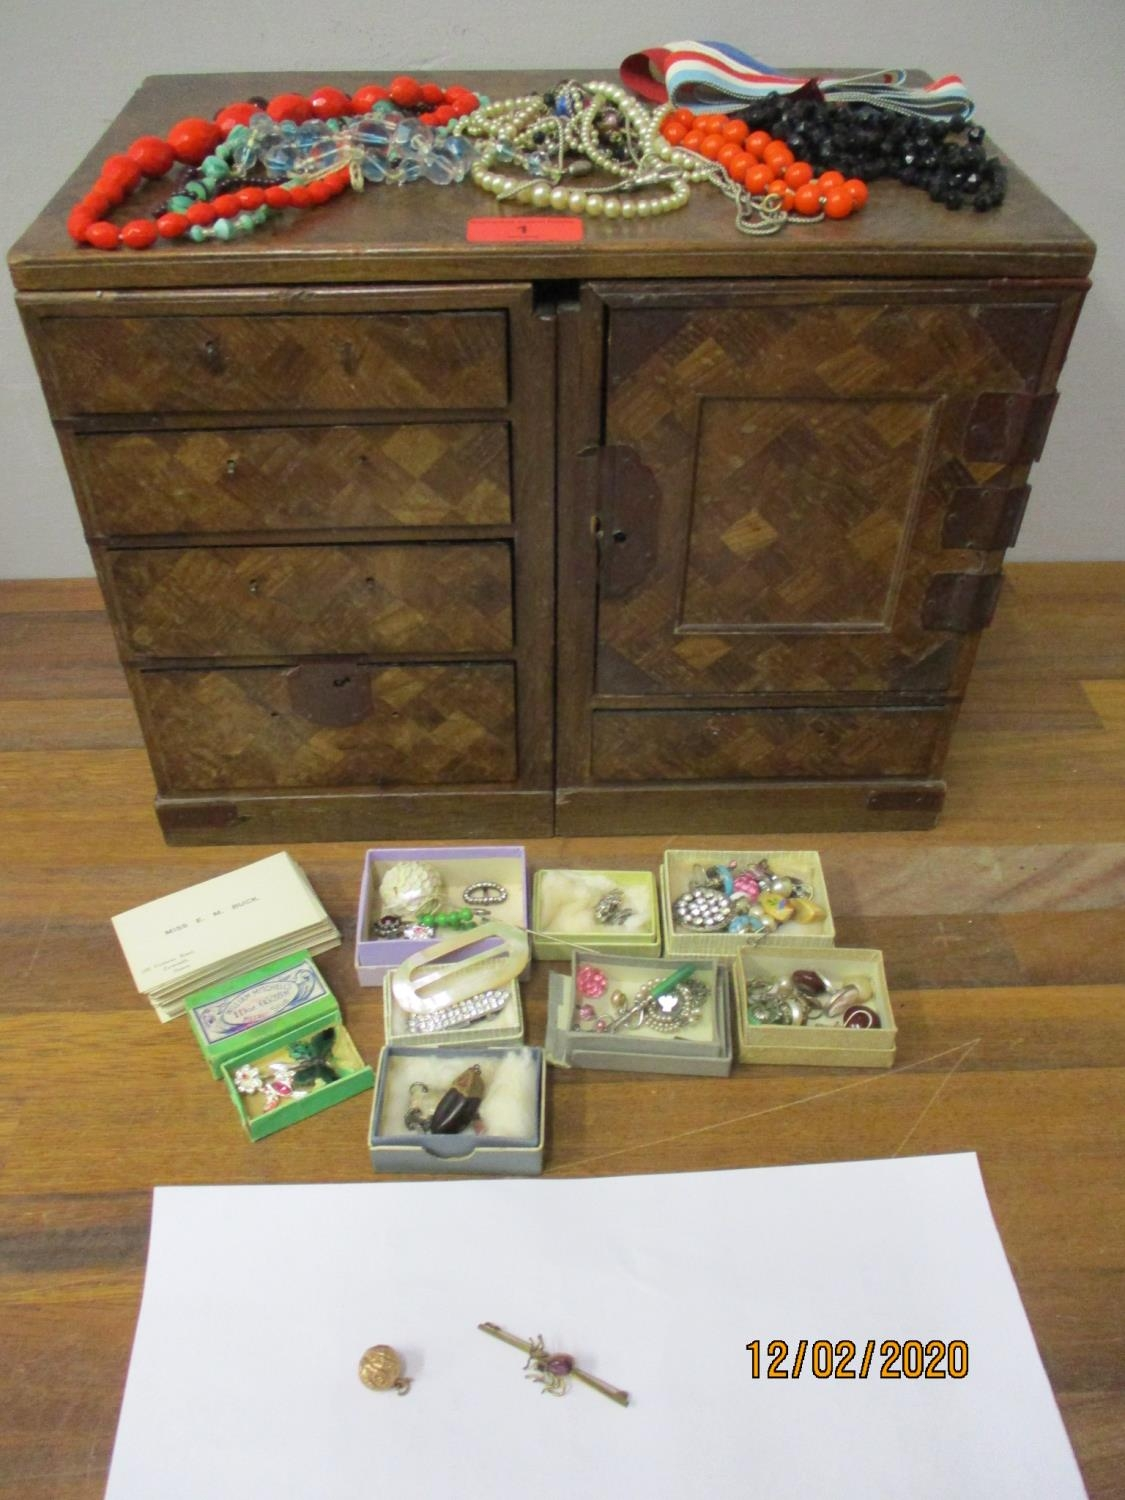 Home Furnishings & Collectables